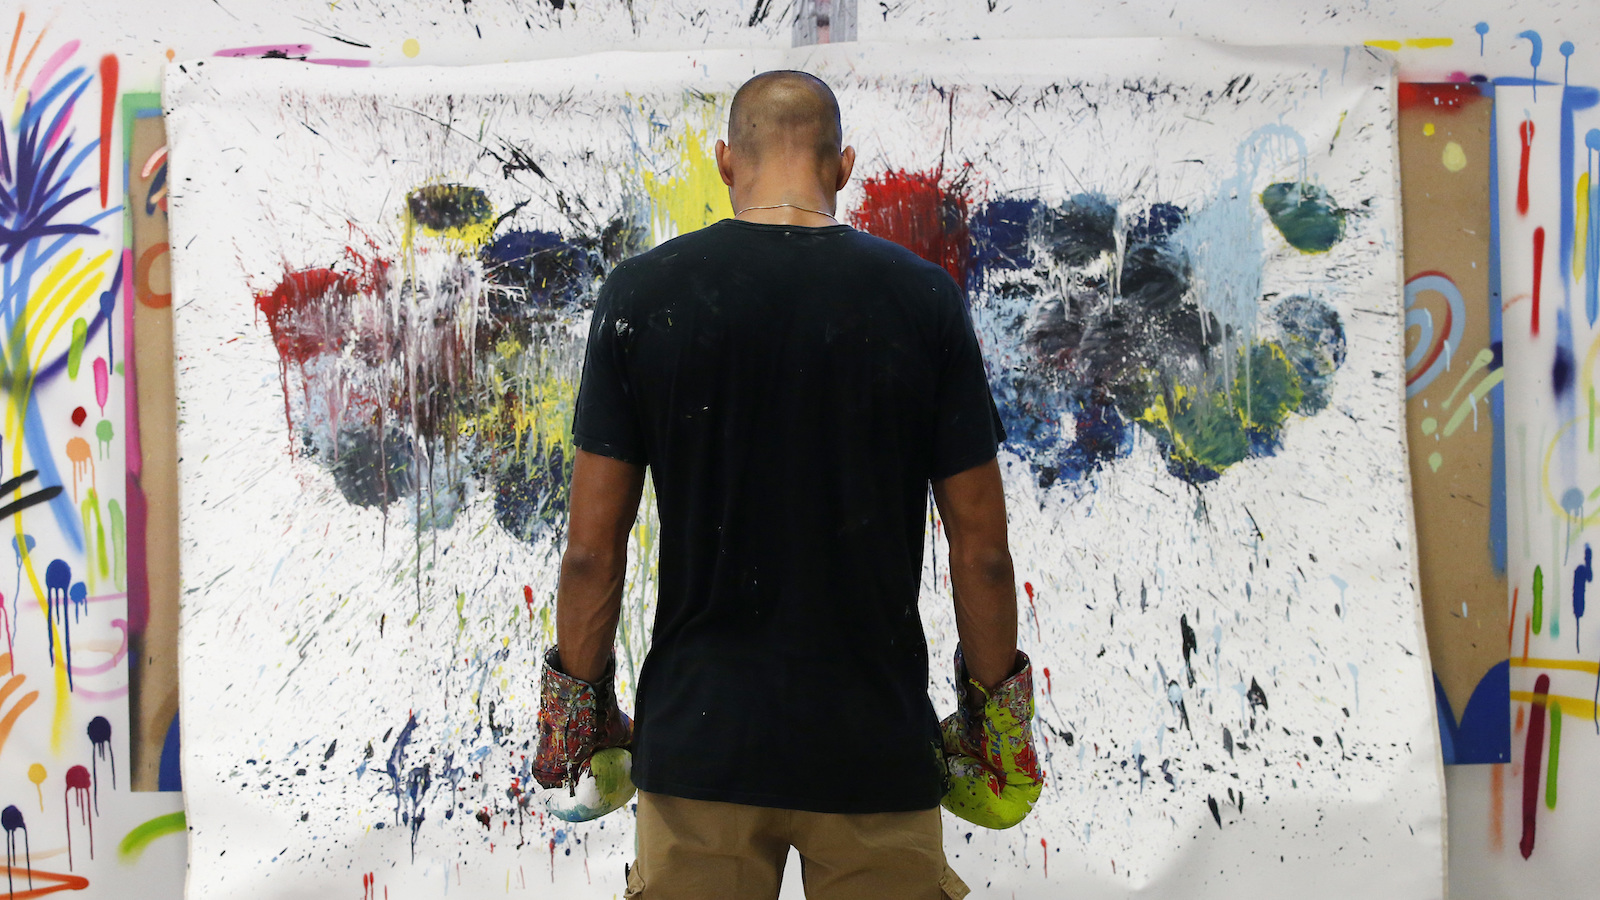 "In this photo taken on Tuesday, Sept. 6, 2016 Omar Hassan poses in front of his creation ""Breaking Through Milano"" in his studio in Milan, Italy. When he creates art work, Omar Hassan doesn't get out paint brushes. He gets out his boxing gloves. Hassan, a 29-year-old artist and boxer, has combined his two passions, with the goal to bring the disciplines closer. Hassan, born in Milan to an Italian mother and Egyptian father, creates the works by dipping his glove in paint, and punching the canvas stretched over cardboard to keep it from breaking. He calls the series ''Breaking Through Milano'' His paintings sell from 8,000 to 40,000 euros, which he calls ''a great satisfaction, but not the goal.'' (AP Photo/Antonio Calanni)"